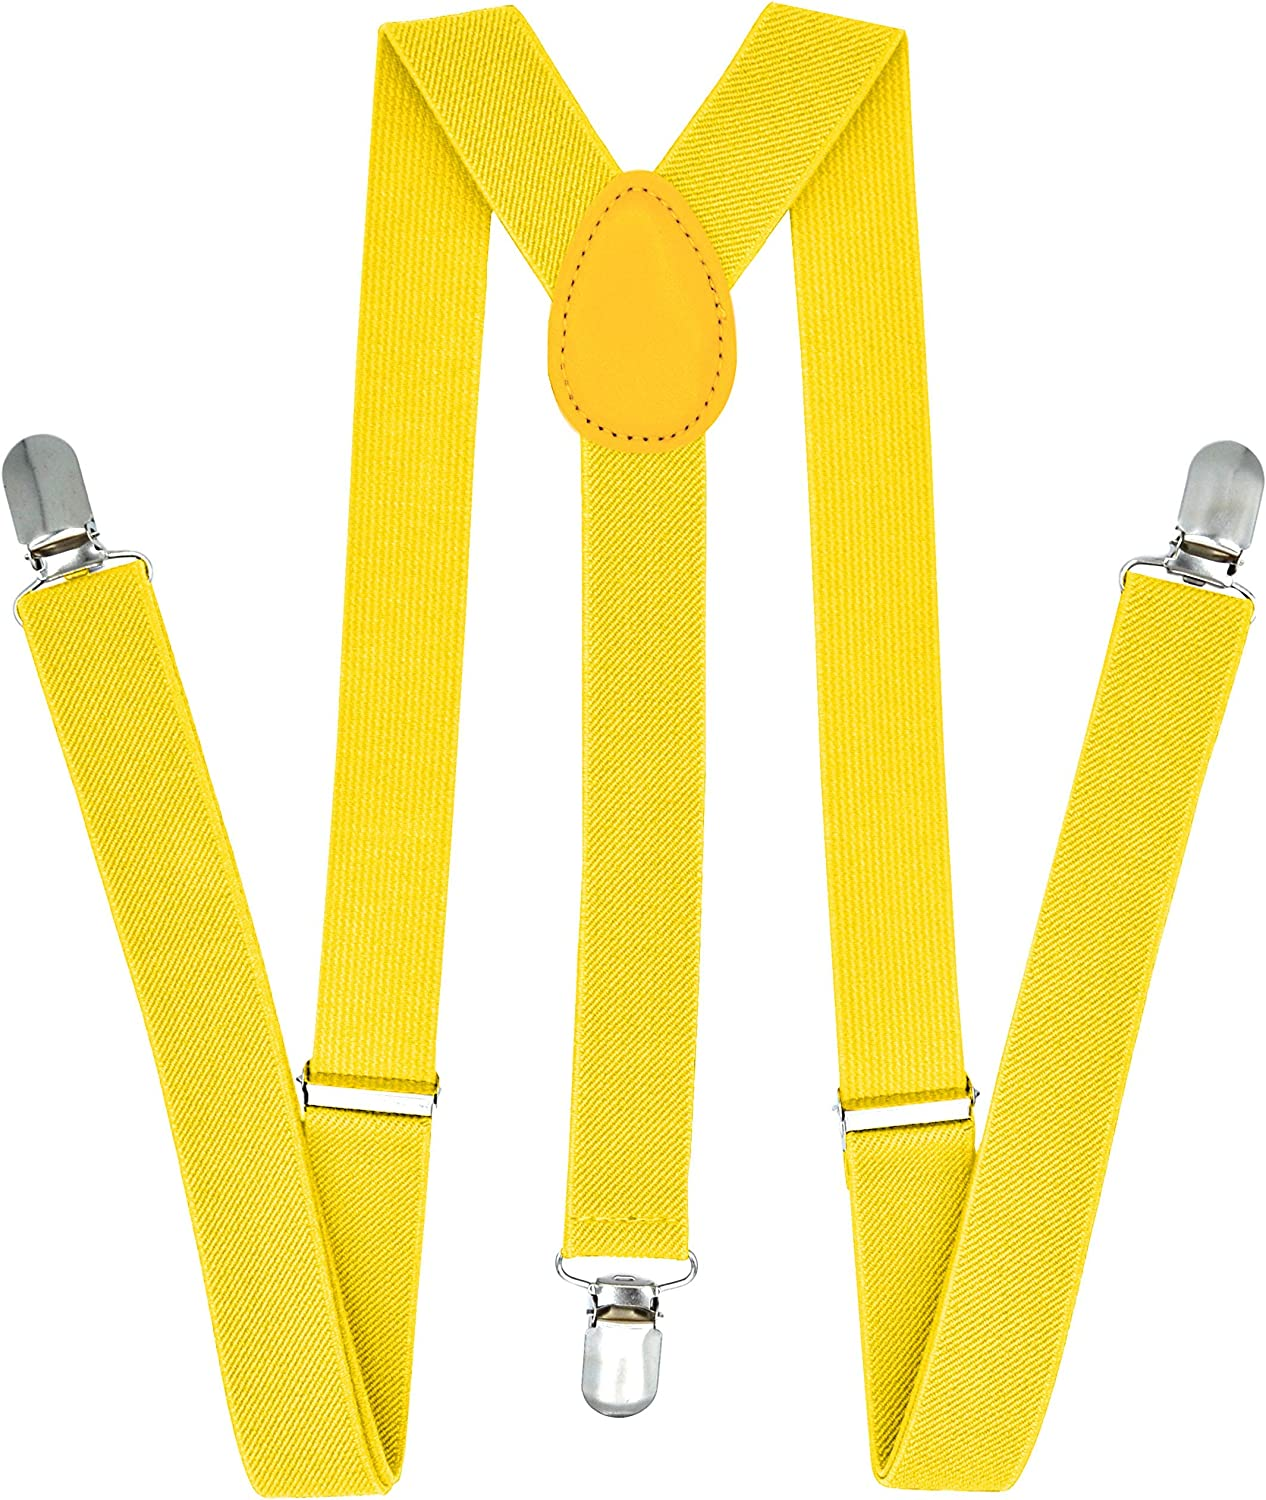 Yellow Set Adjustable Elastic Y Back Style Suspender Bowties Trilece Suspenders and Bow tie Set for Men Women Boys Adults